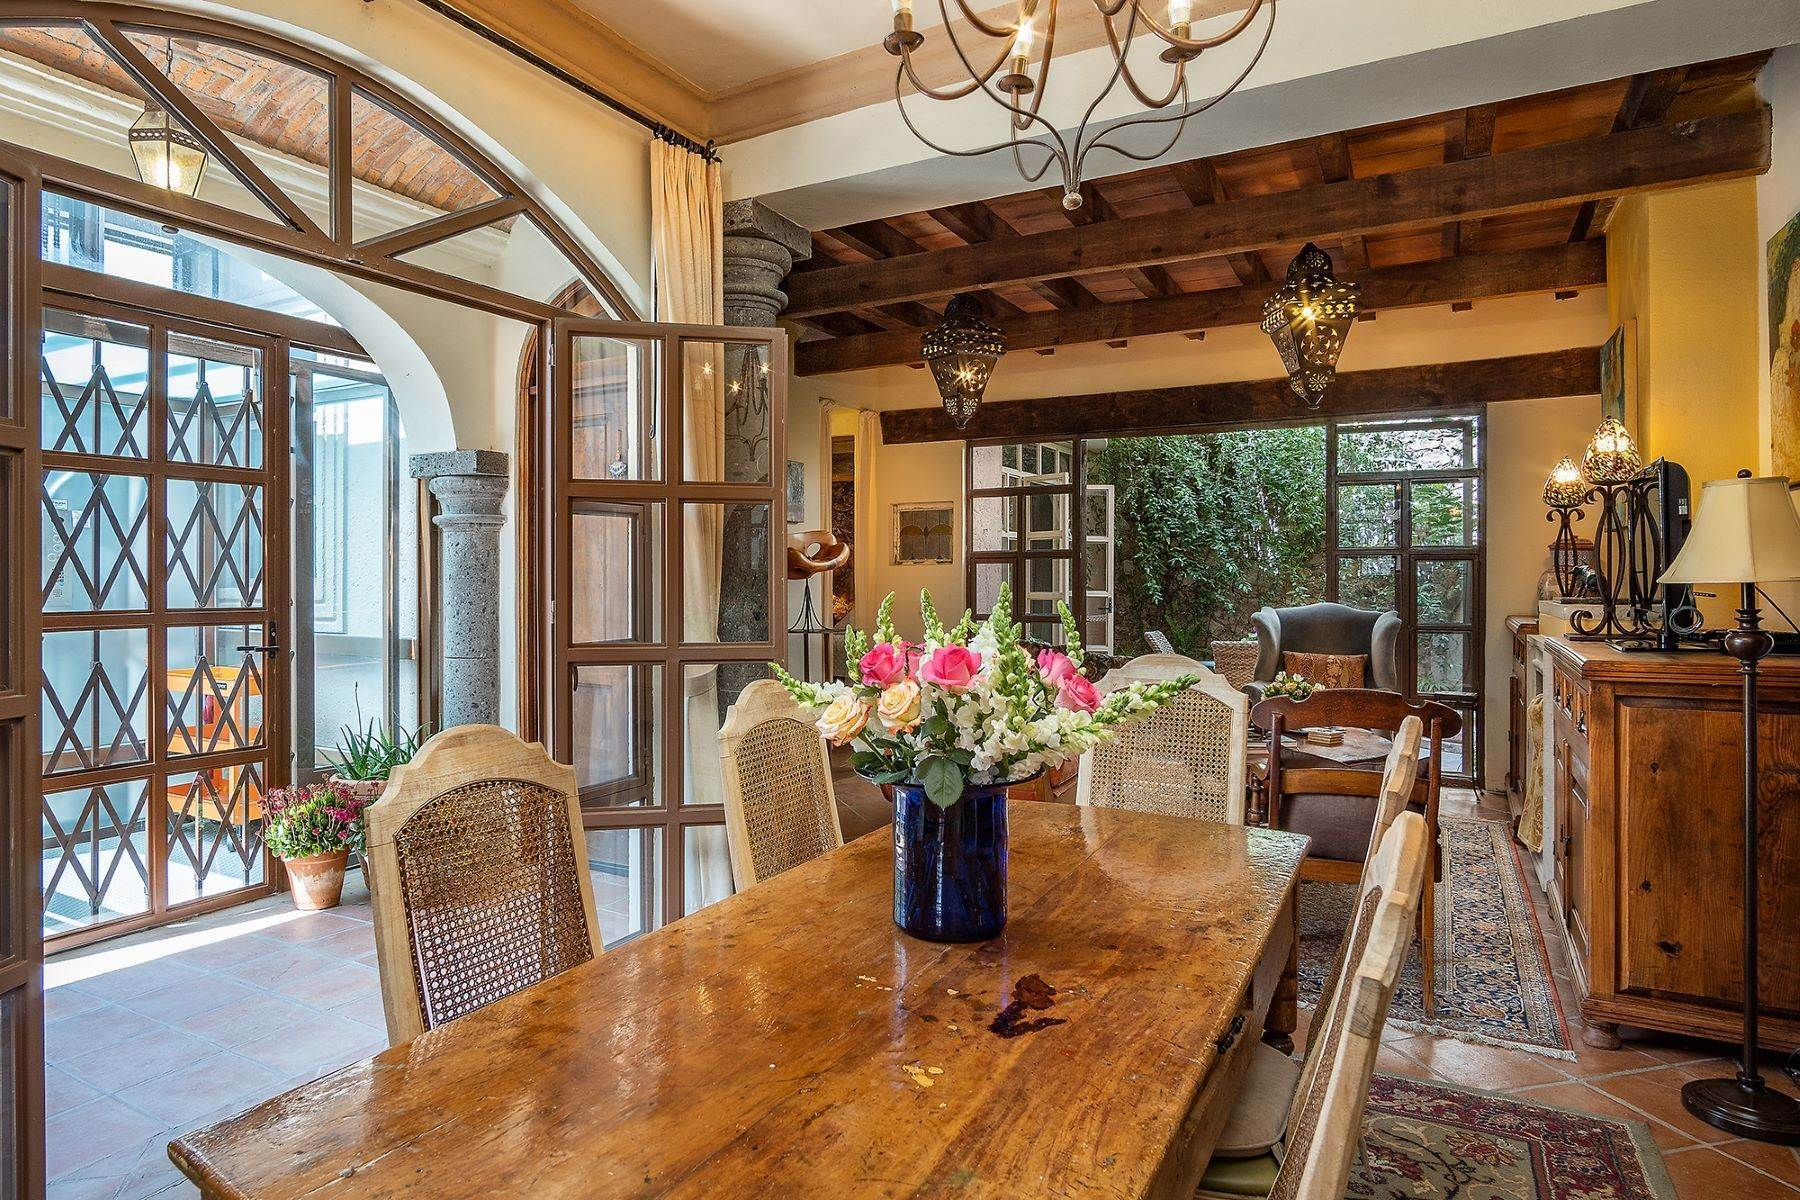 Single Family Homes for Sale at Casa Calandrias San Miguel De Allende, Guanajuato Mexico